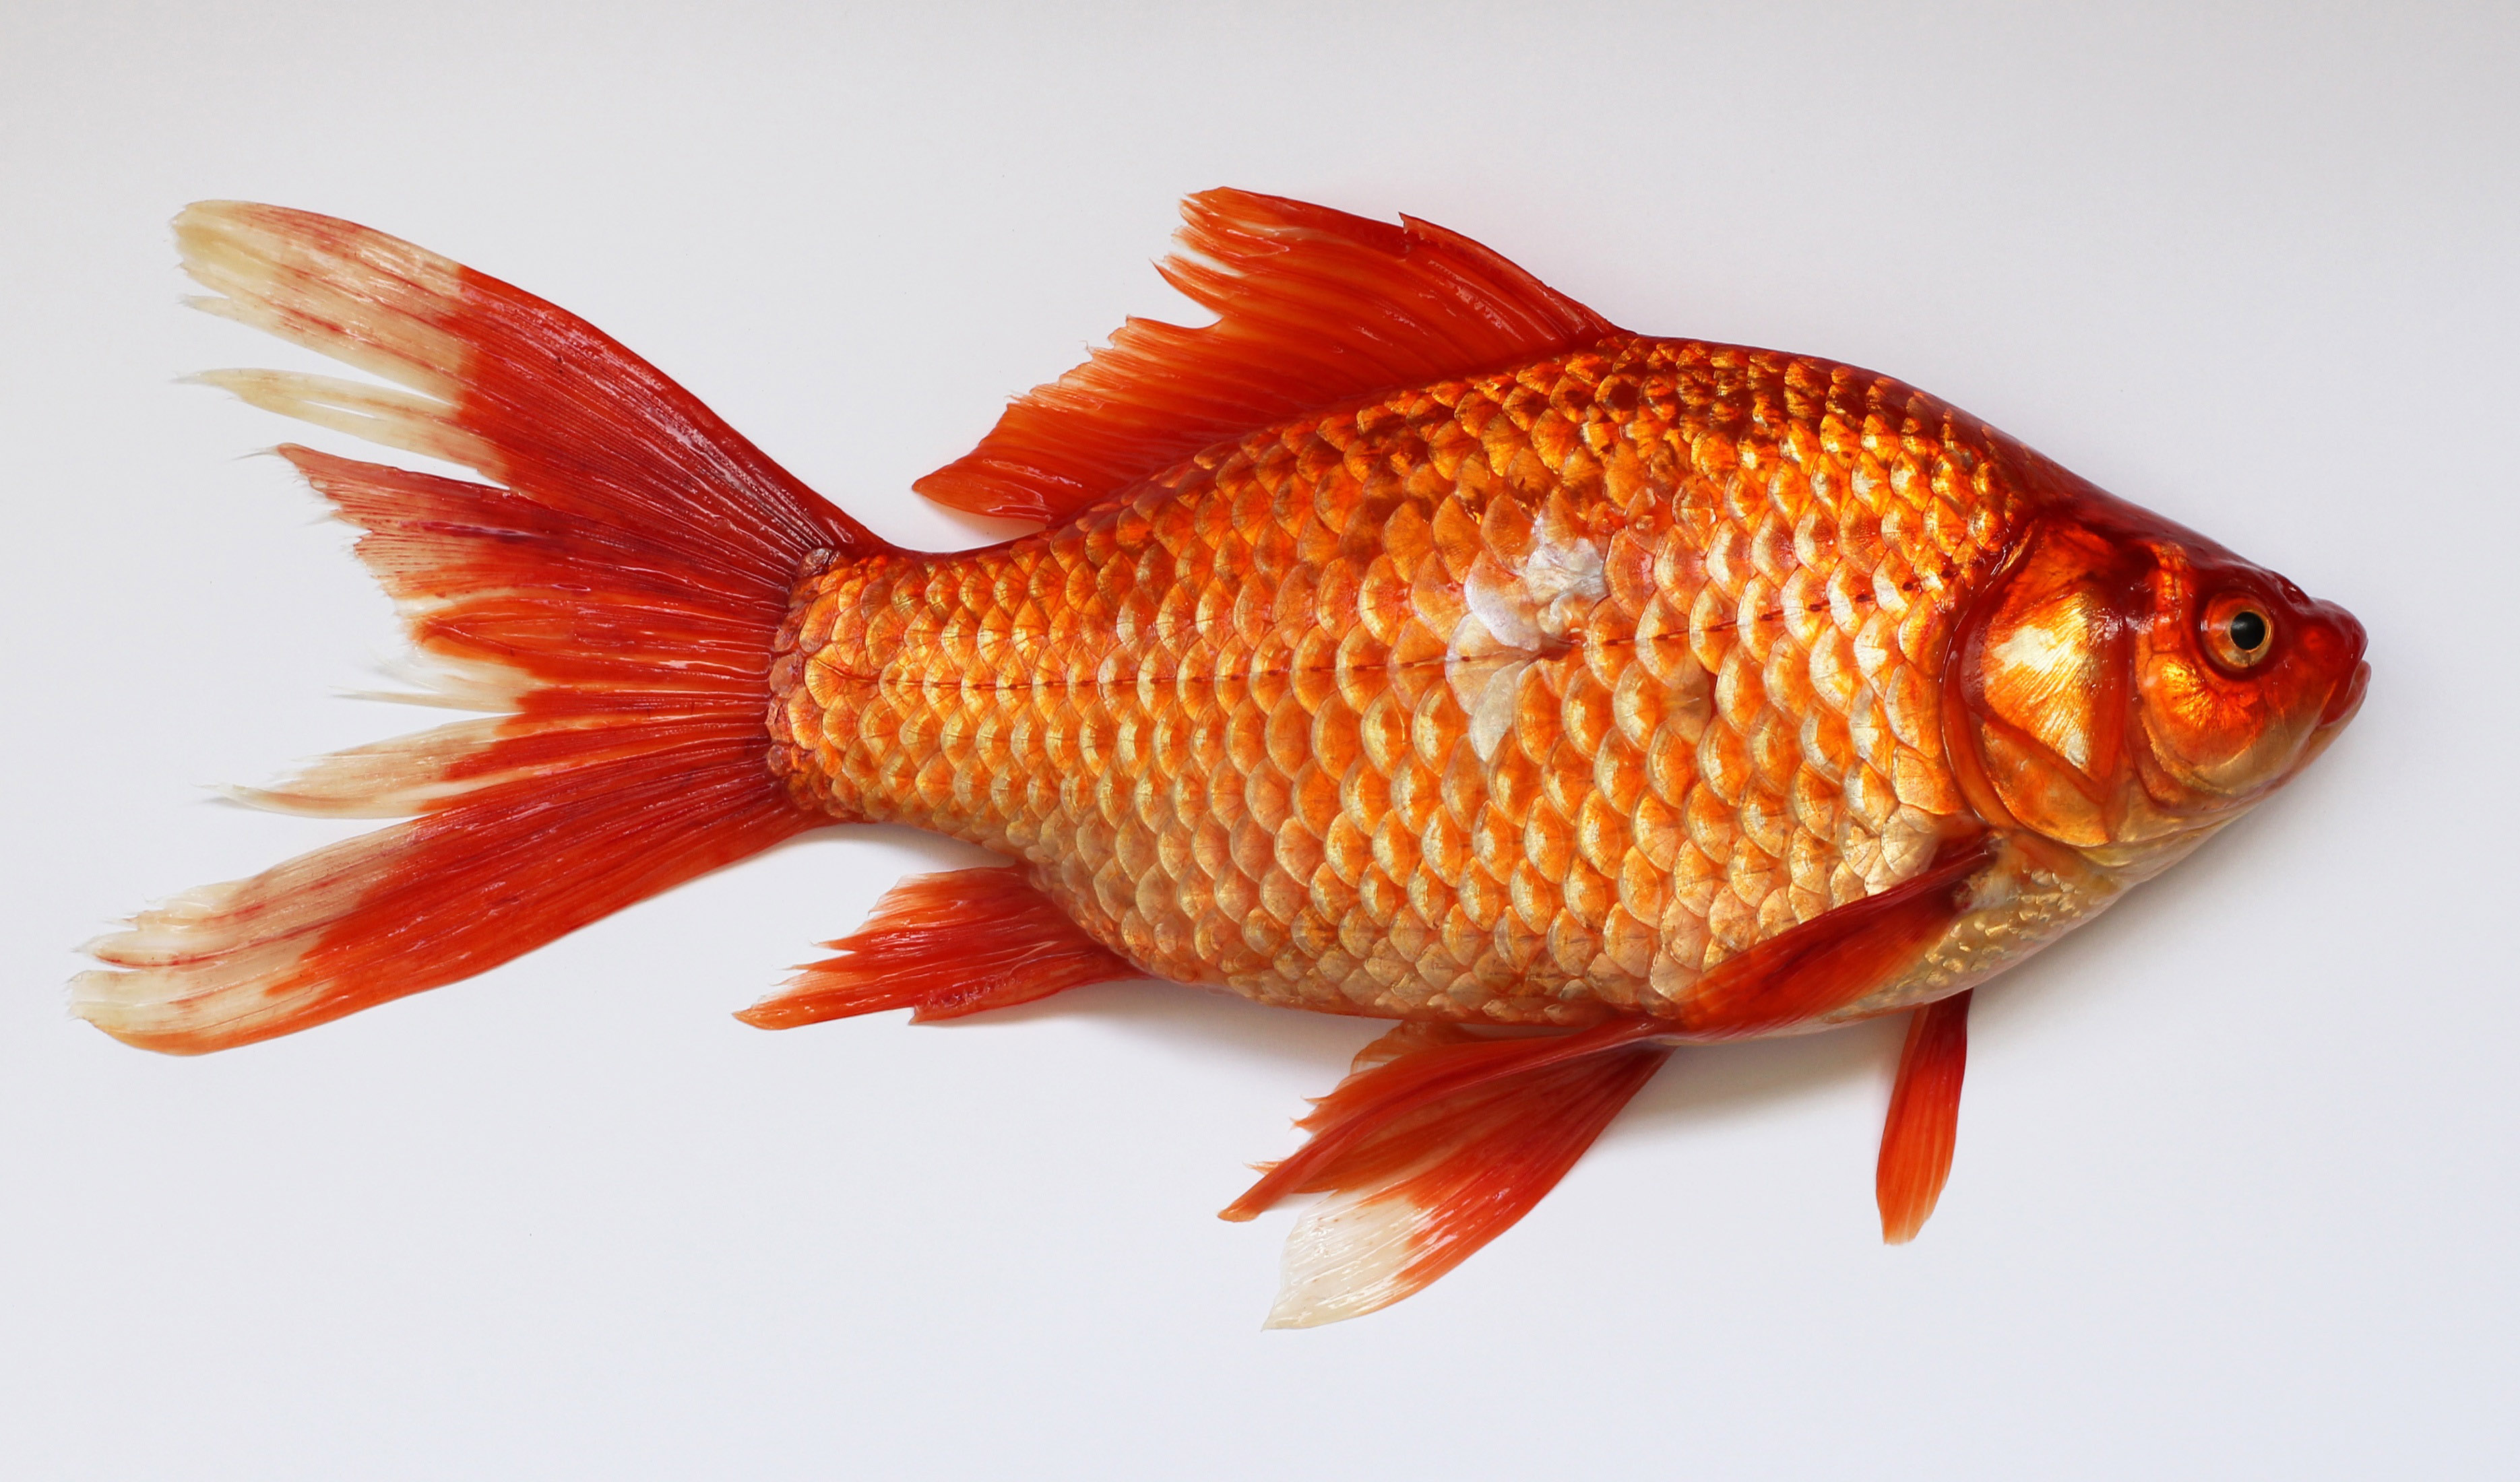 goldfish-out-of-water.jpg